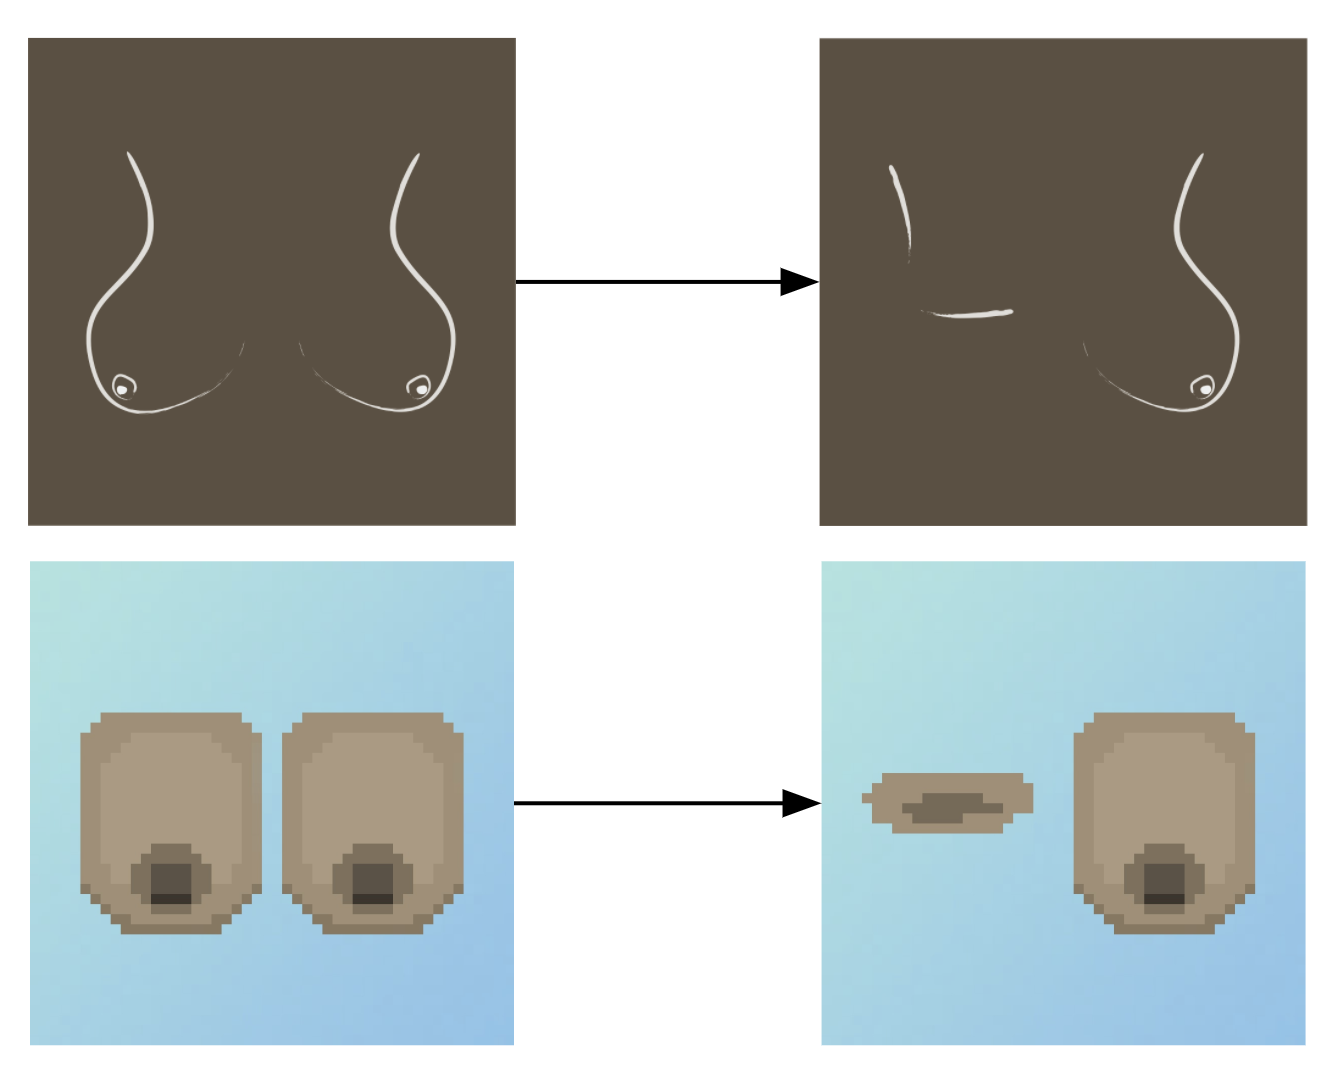 Two example images explaining the mechanism of how NFTs change